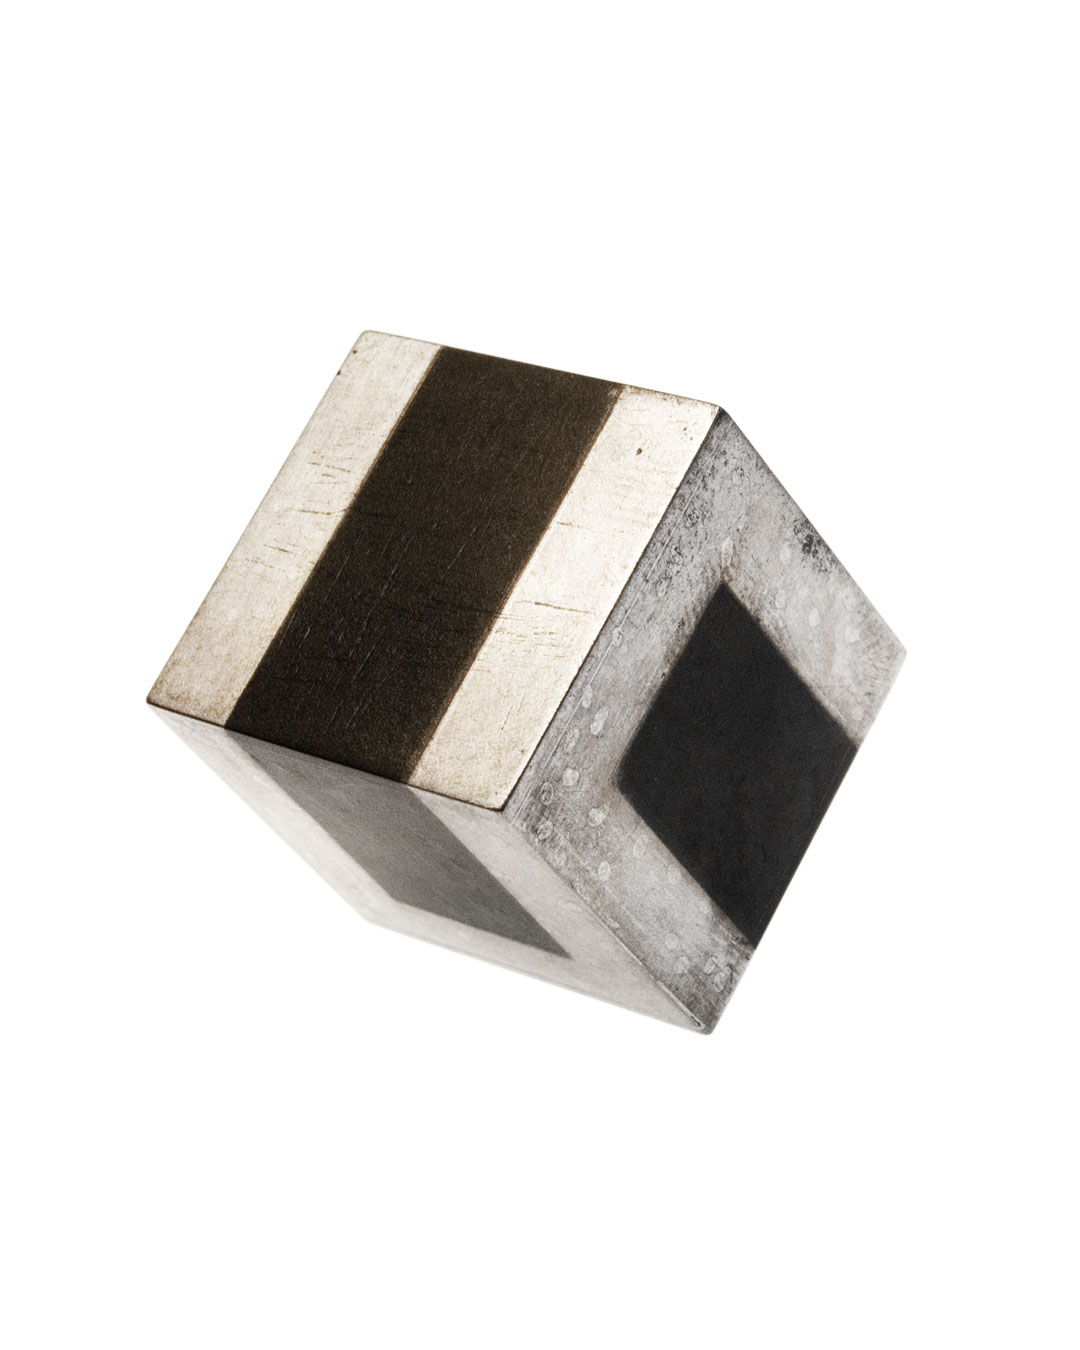 Tore Svensson, Cube, 2008, brooch; etched steel, partly gilt or silver-plated, 20 x 20 x 20 mm, €425